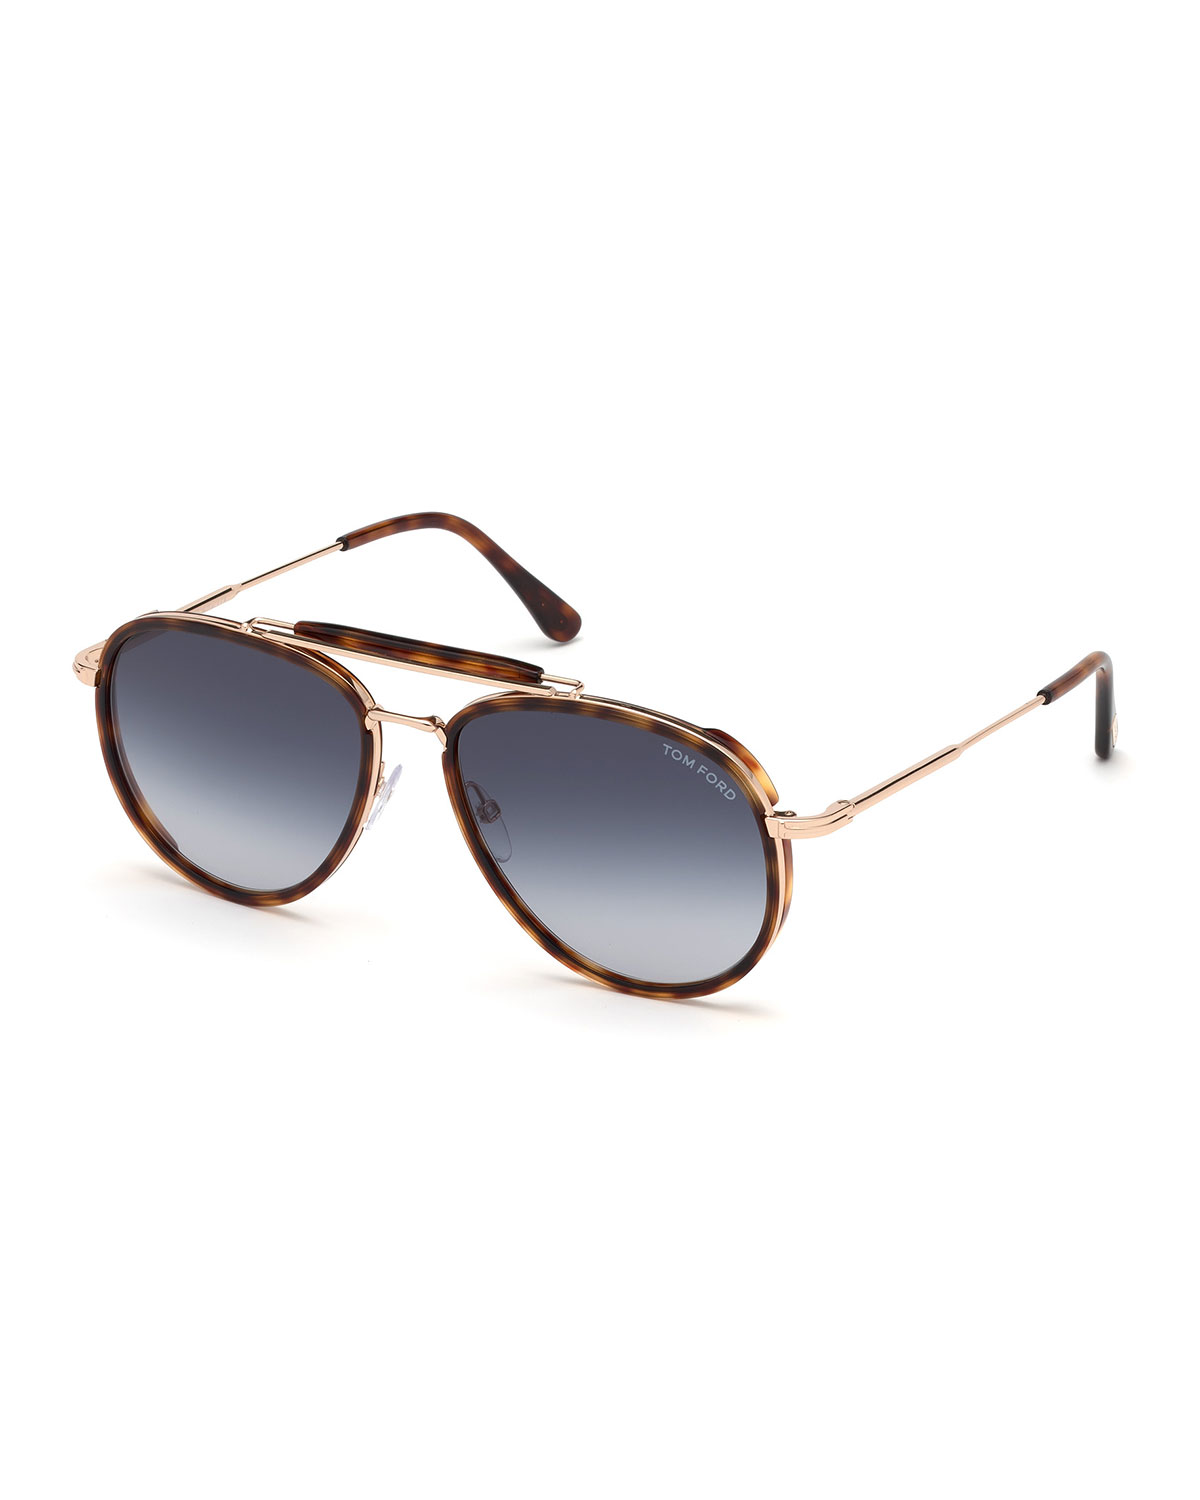 6f70737fe831 TOM FORD Men s Tripp Tortoiseshell Aviator Sunglasses